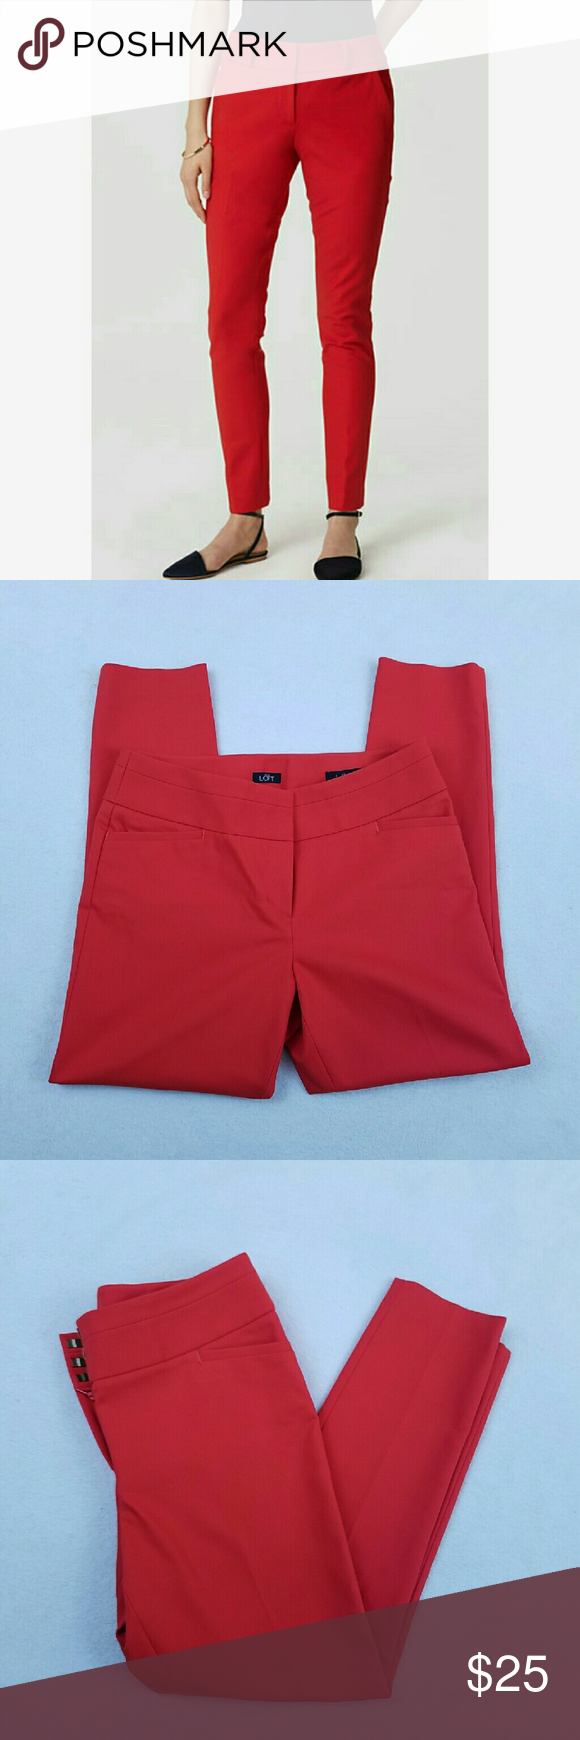 "NWOT LOFT Julie Skinny Ankle Pants Women's Ann Taylor LOFT Julie Skinny Ankle Pants in Fireball Red  53% cotton, 41% polyester, 6% spandex  Size 8  NWOT   Measurements laying flat:  Waist: 16""  Rise: 10""  Inseam: 26.5"" LOFT Pants Skinny"